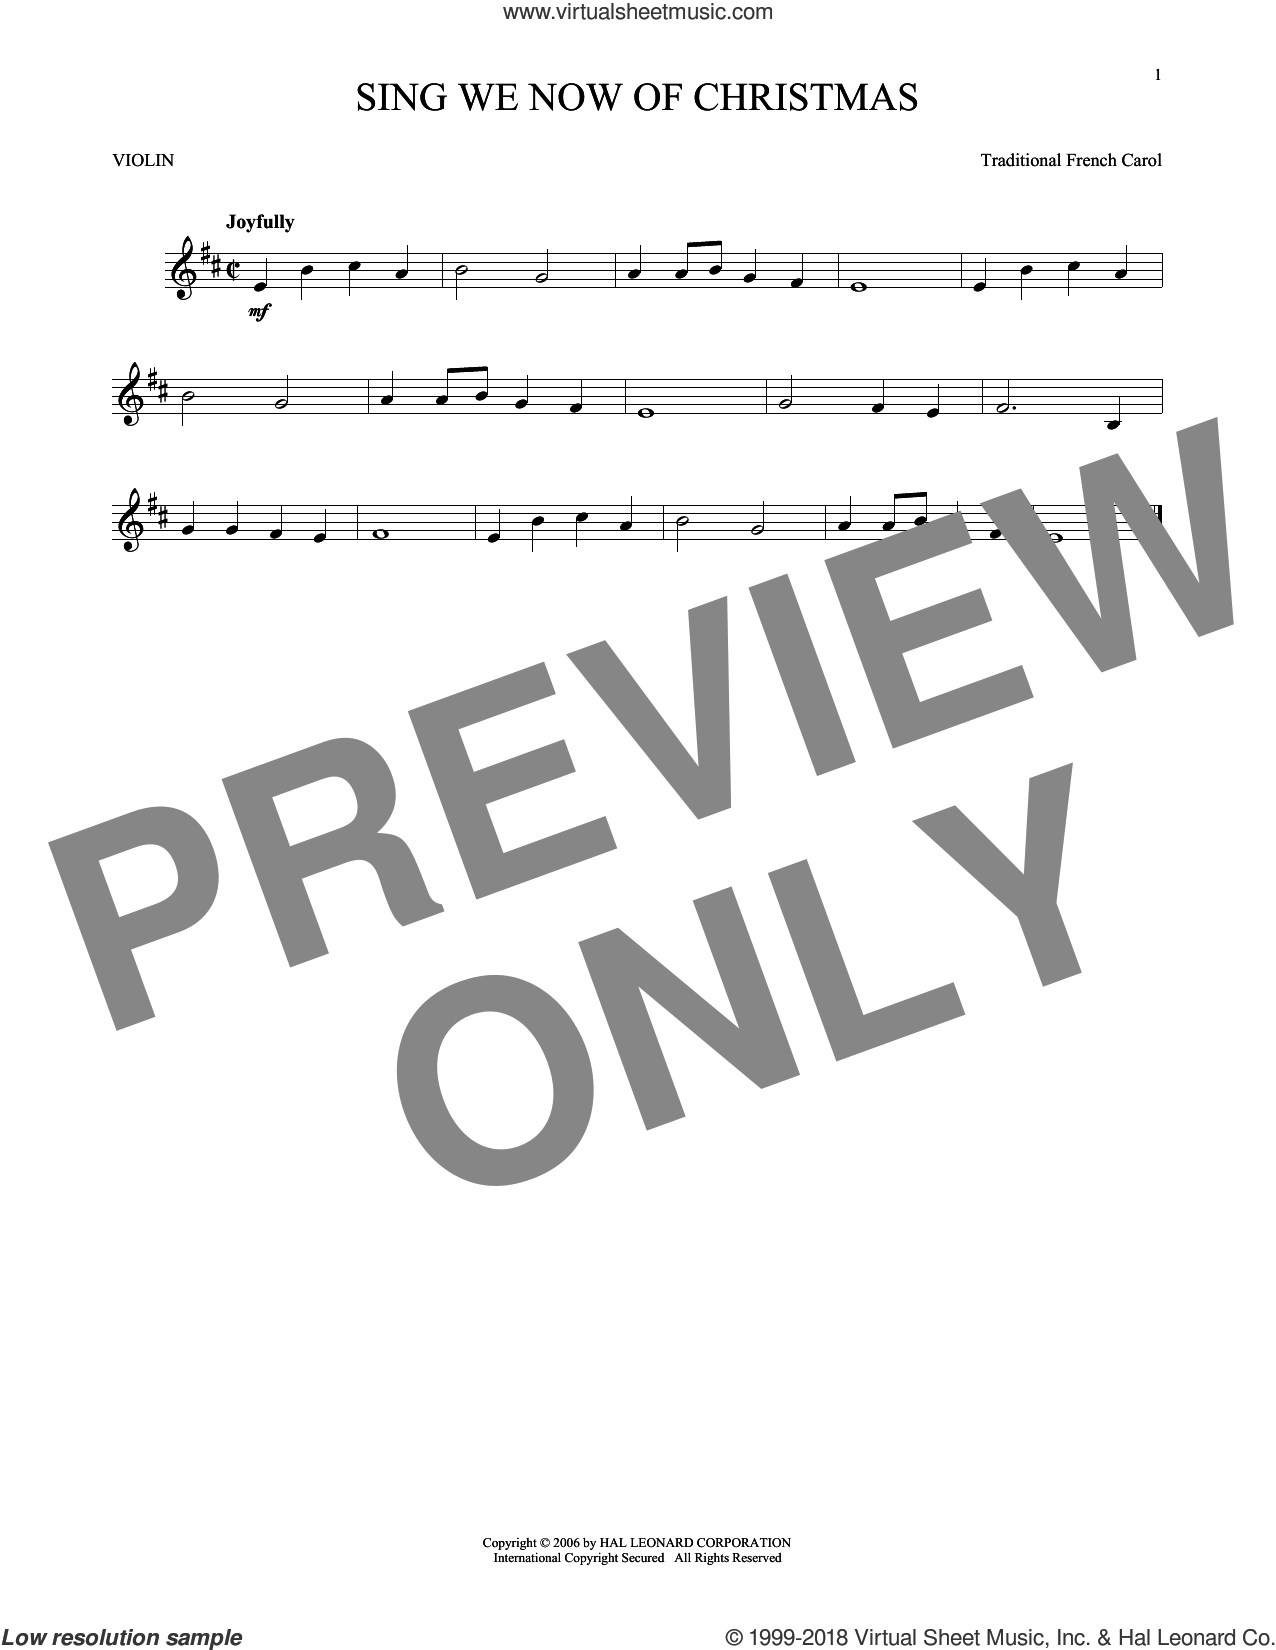 Sing We Now Of Christmas sheet music for violin solo, intermediate skill level